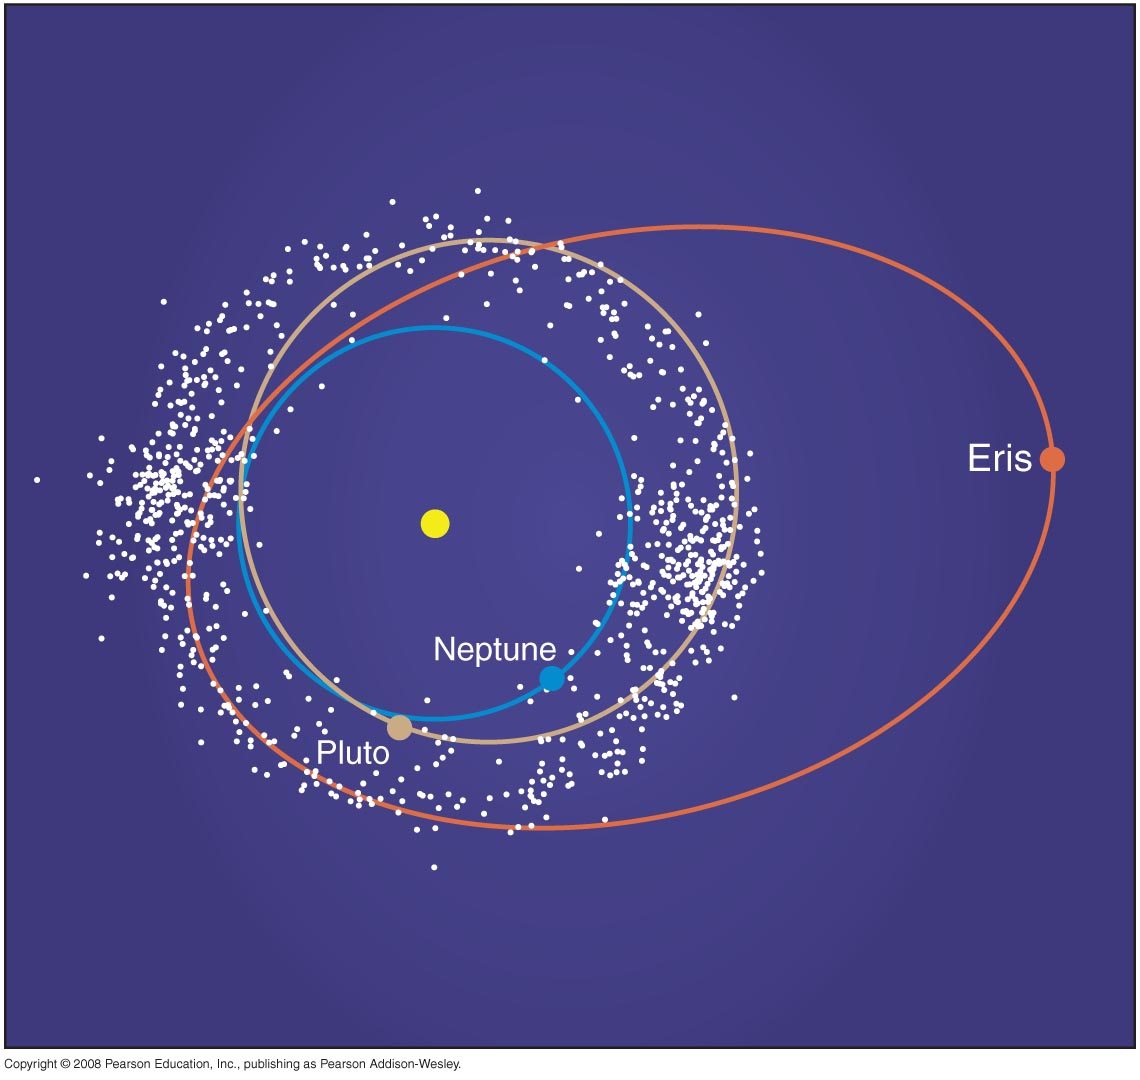 asteroid belt examples - photo #26